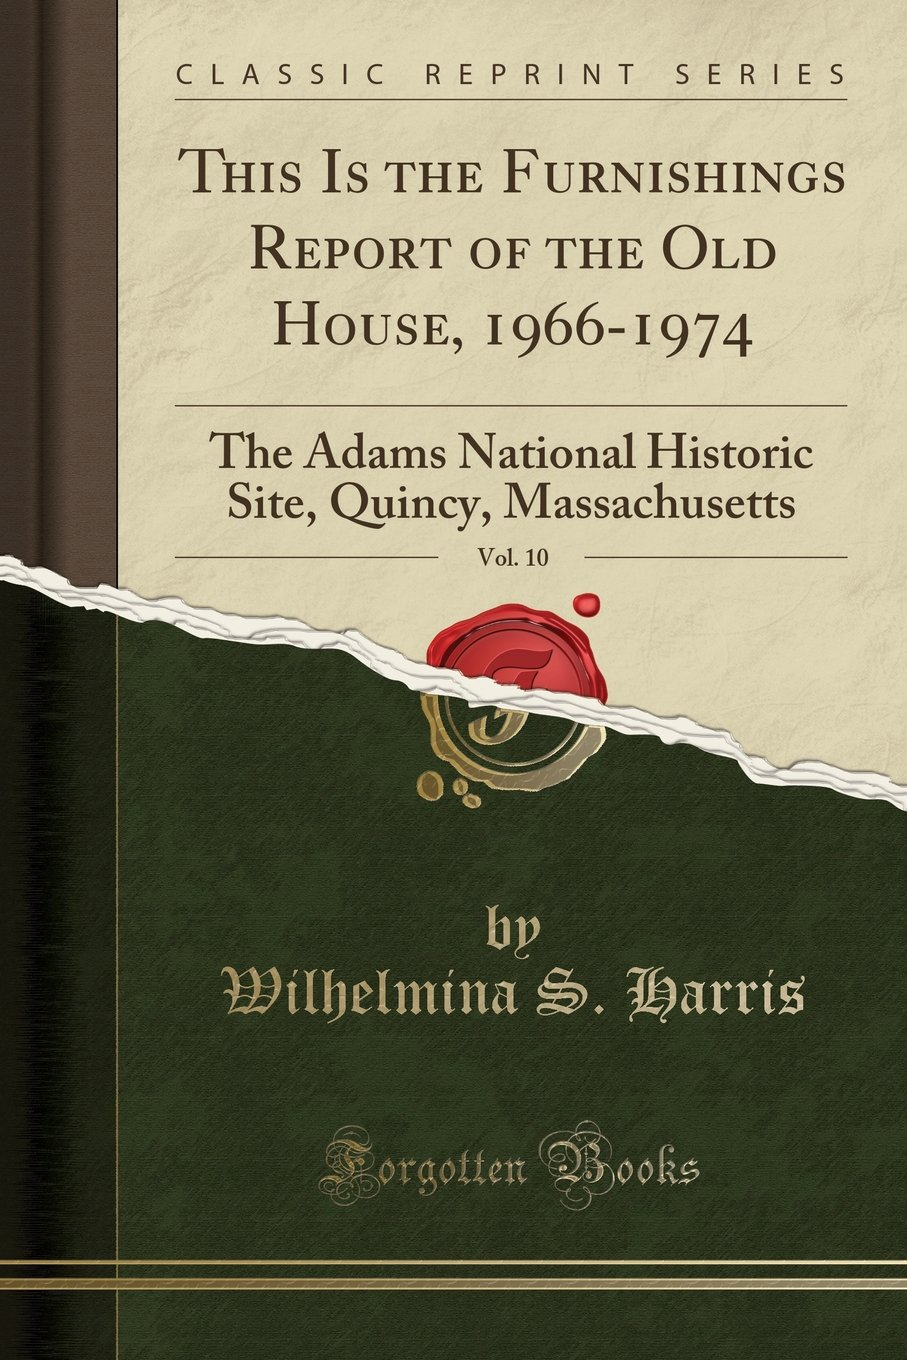 This Is the Furnishings Report of the Old House, 1966-1974, Vol. 10: The Adams National Historic Site, Quincy, Massachusetts (Classic Reprint)